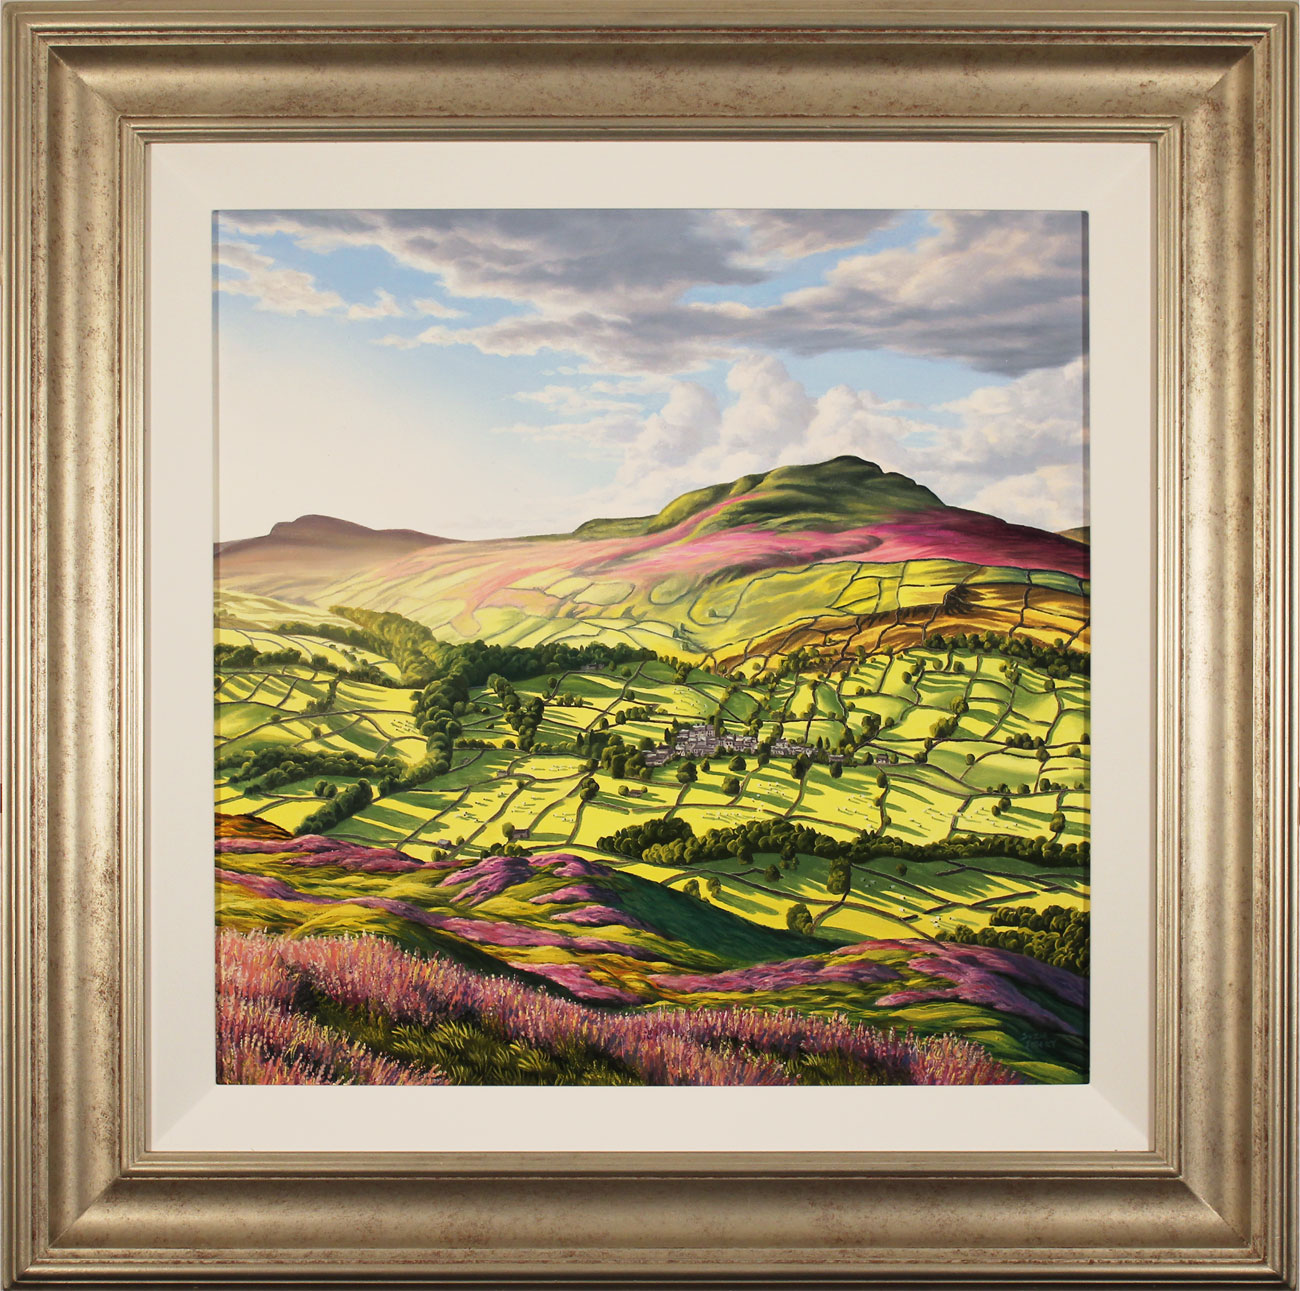 Suzie Emery, Original acrylic painting on board, Yorkshire Glory Click to enlarge